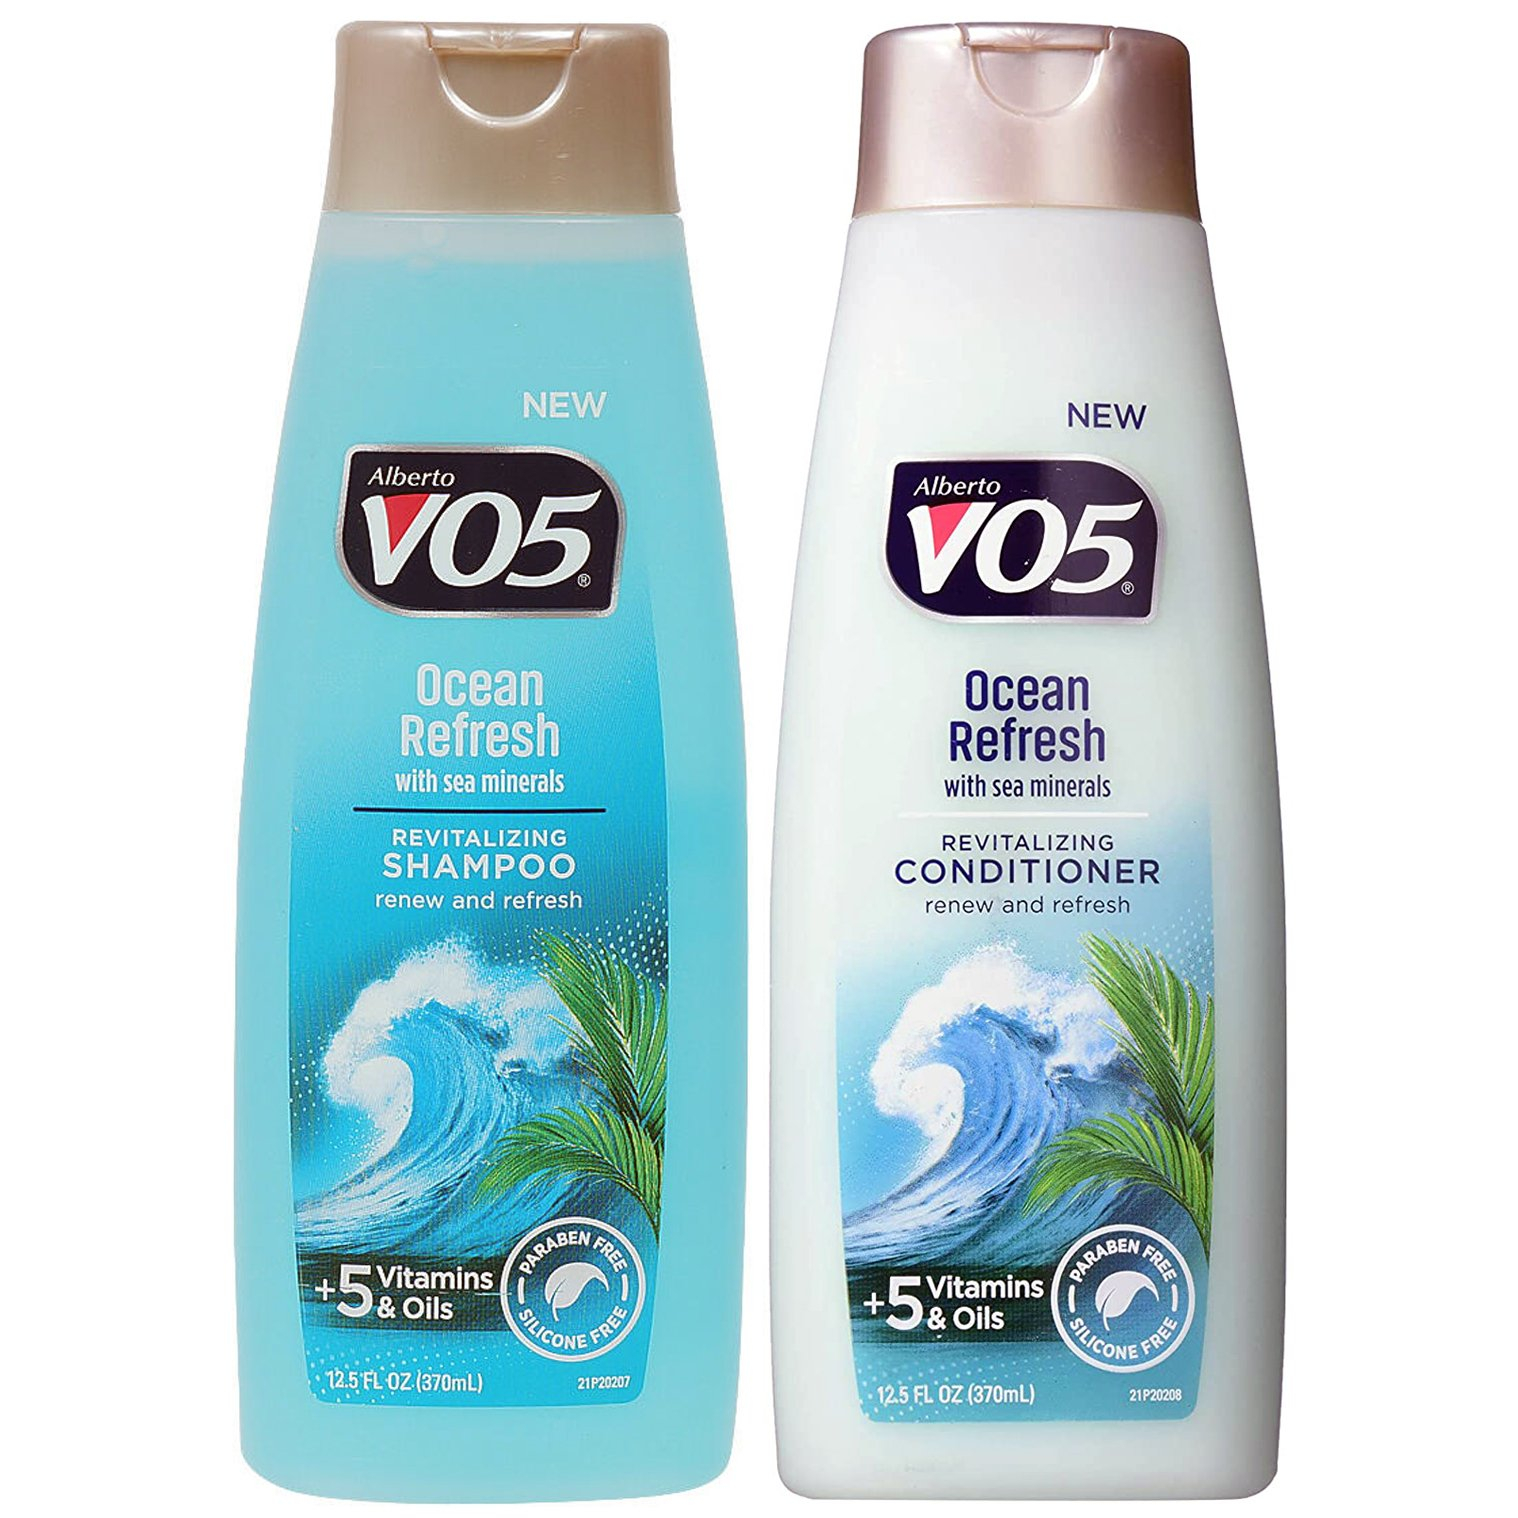 Alberto VO5 Ocean Refresh Shampoo and Conditioner Set 12.5oz